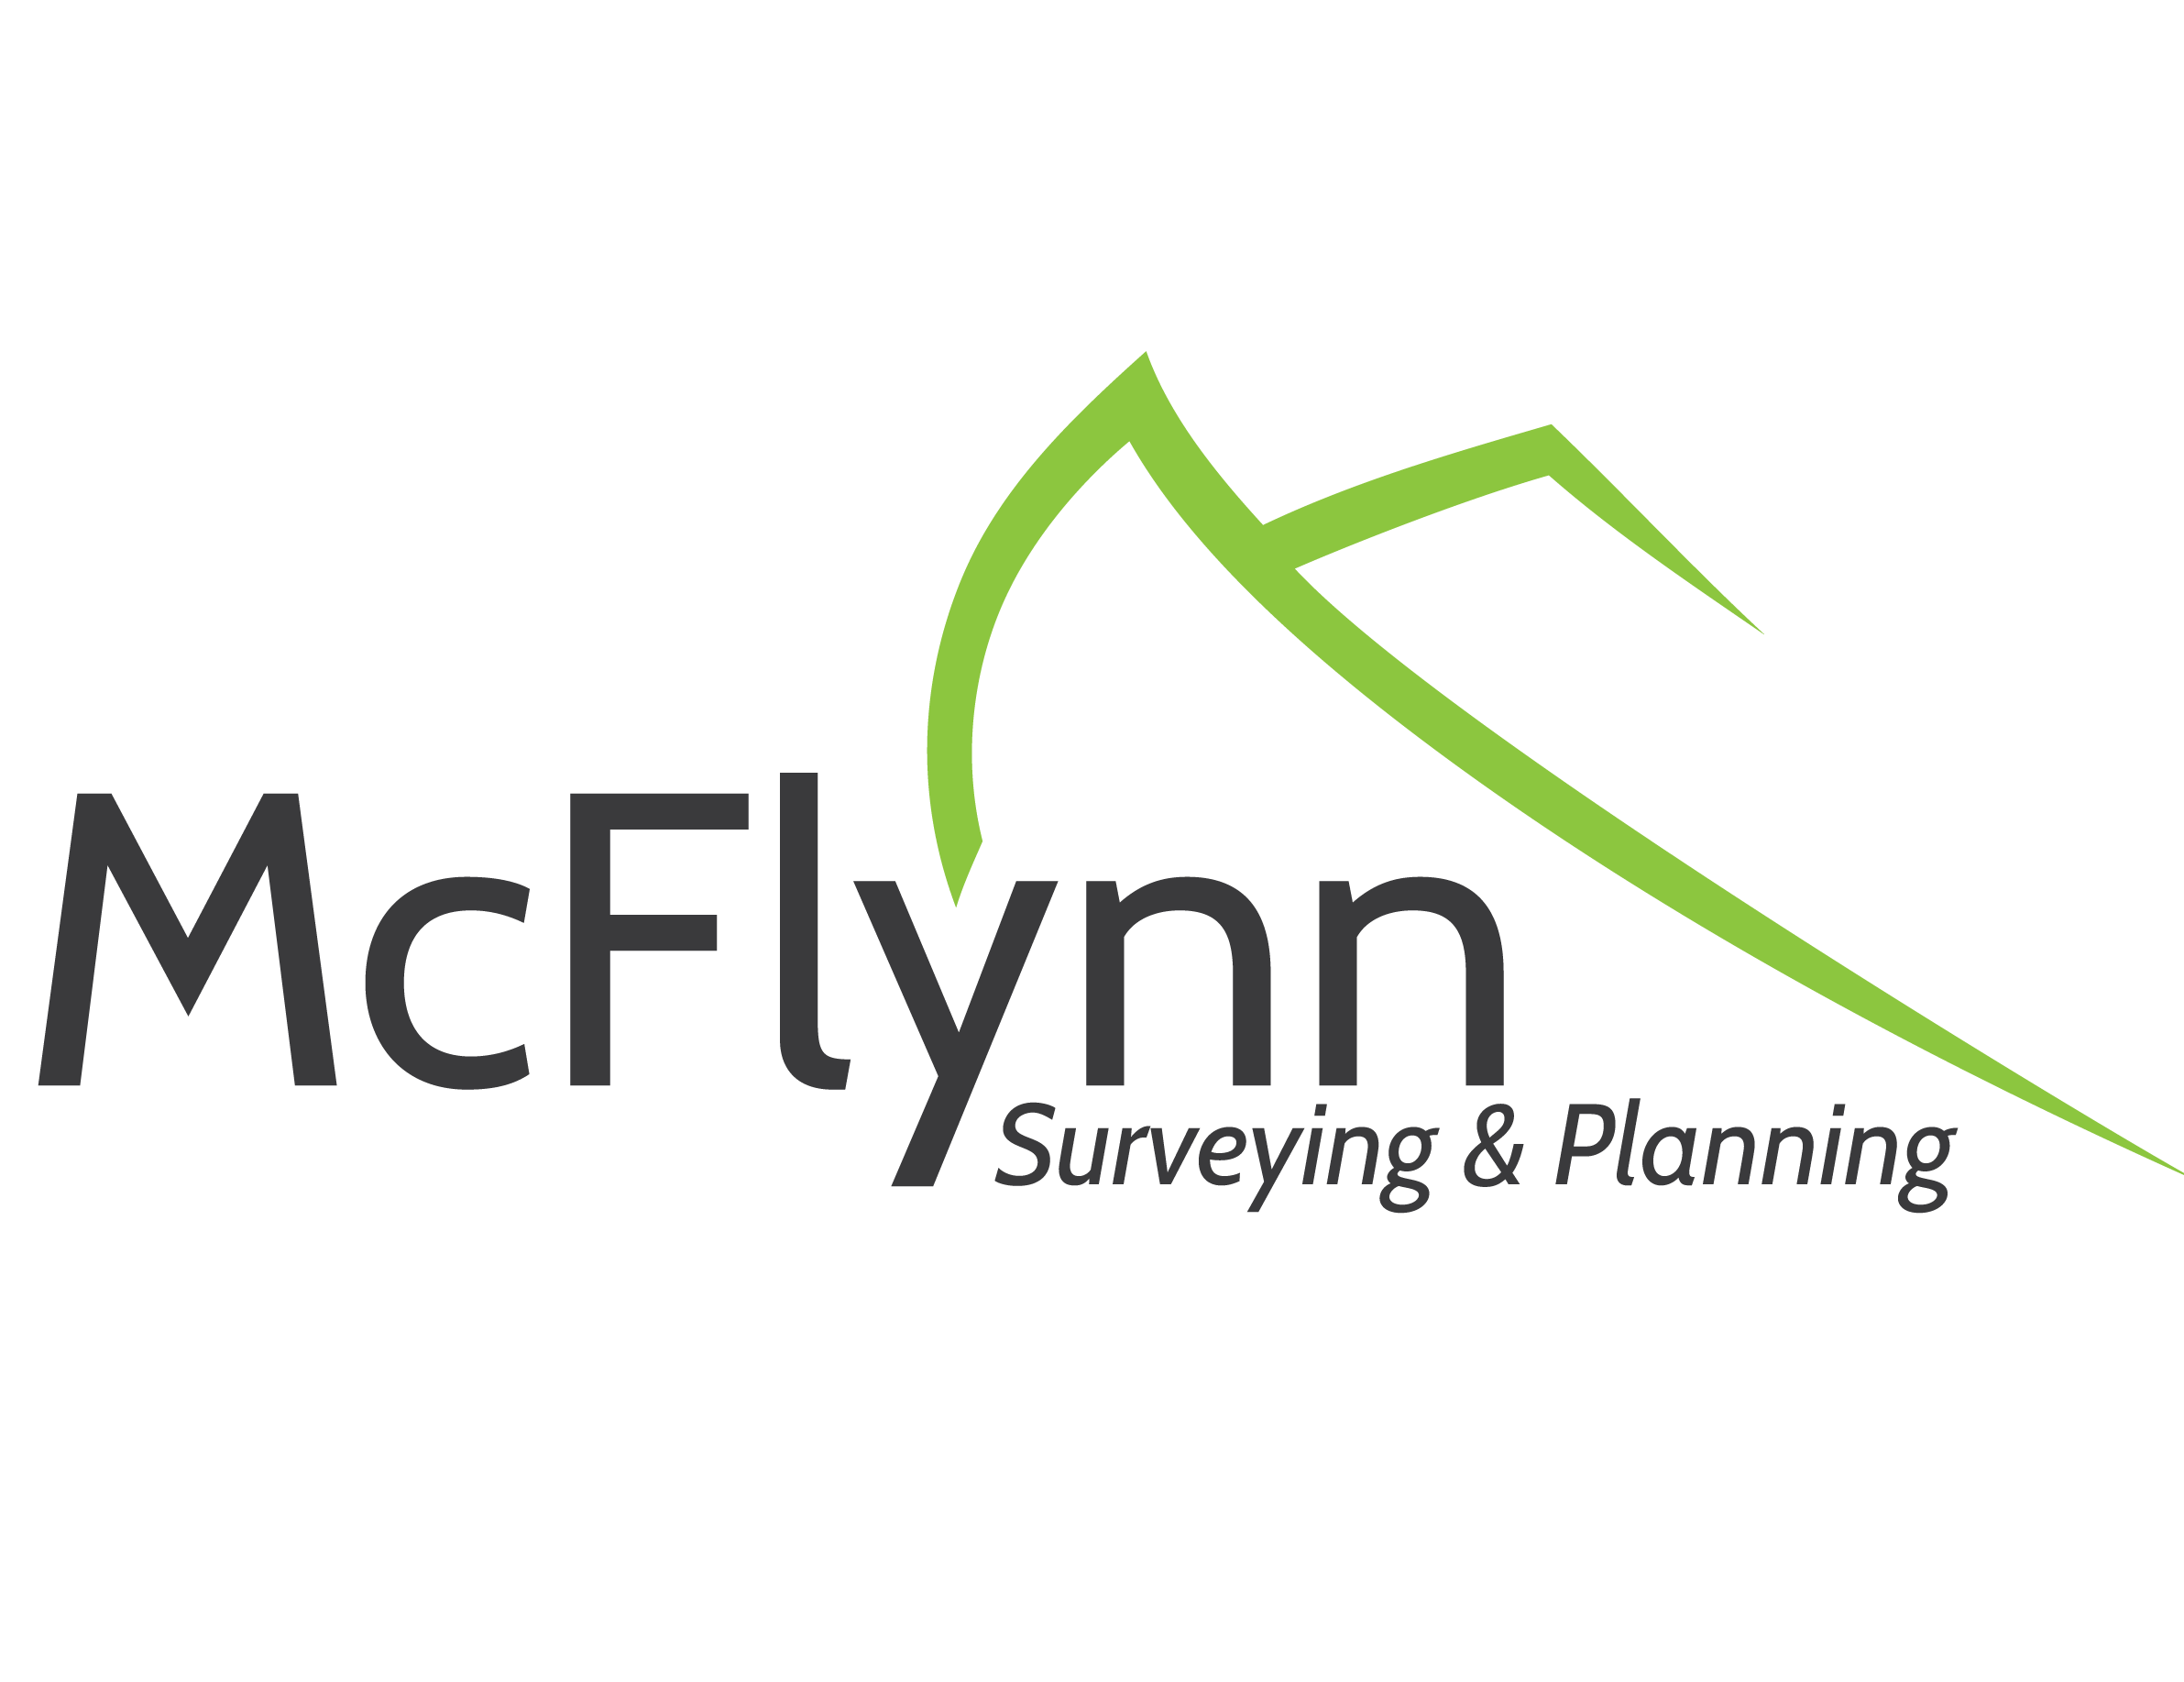 McFlynn Surveying and Planning